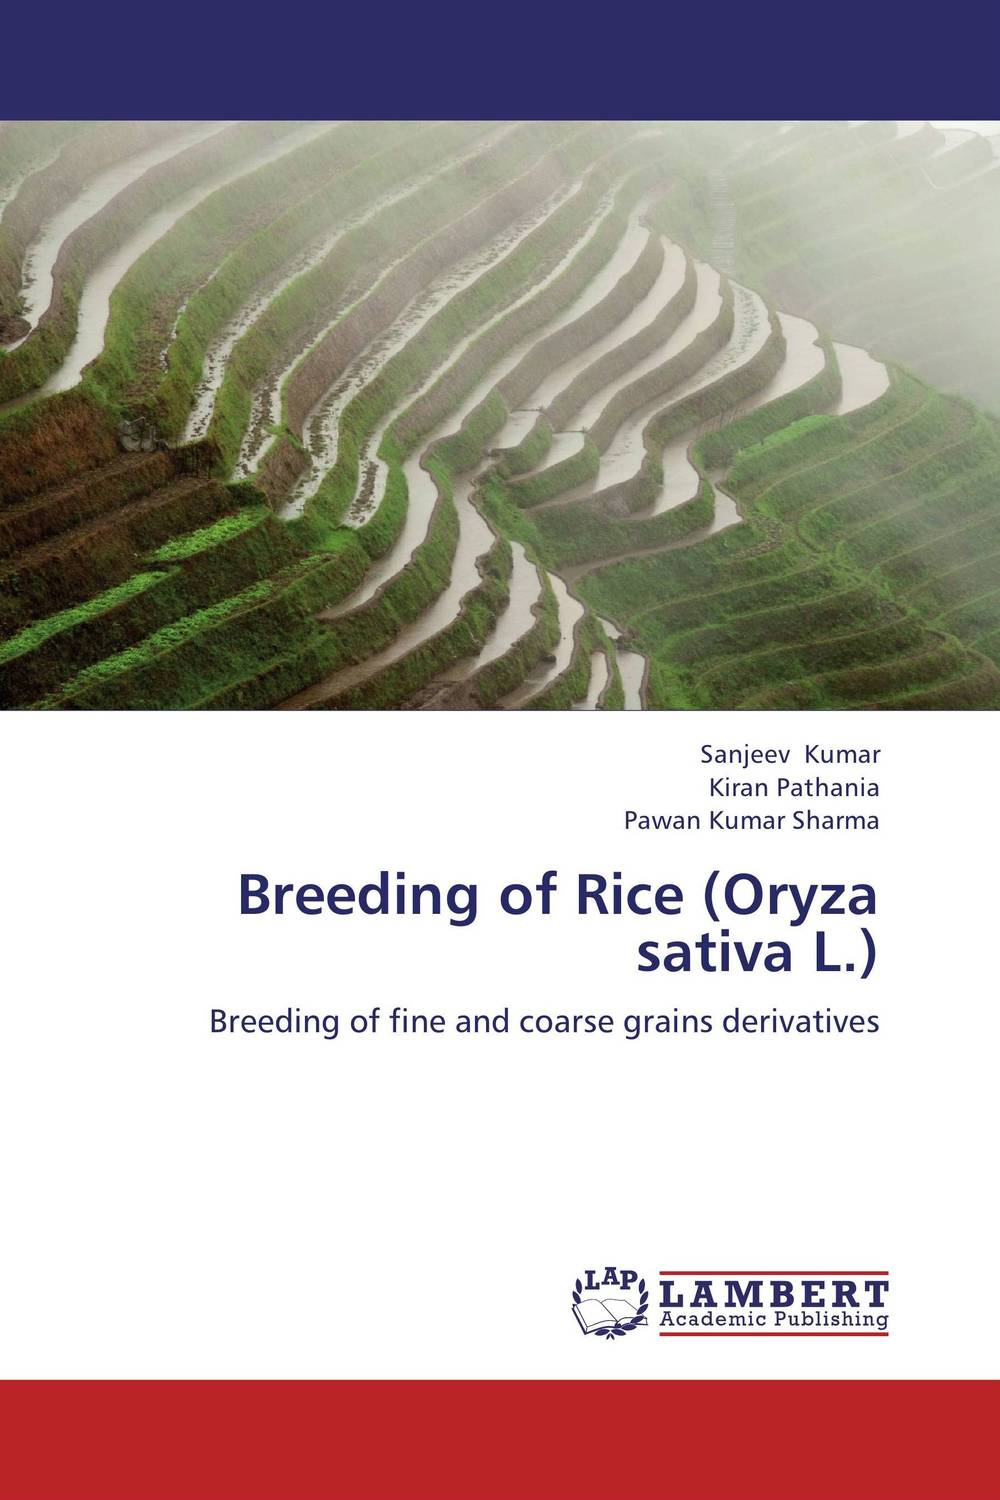 Breeding of Rice (Oryza sativa L.) sanjeev kumar kiran pathania and pawan kumar sharma breeding of rice oryza sativa l